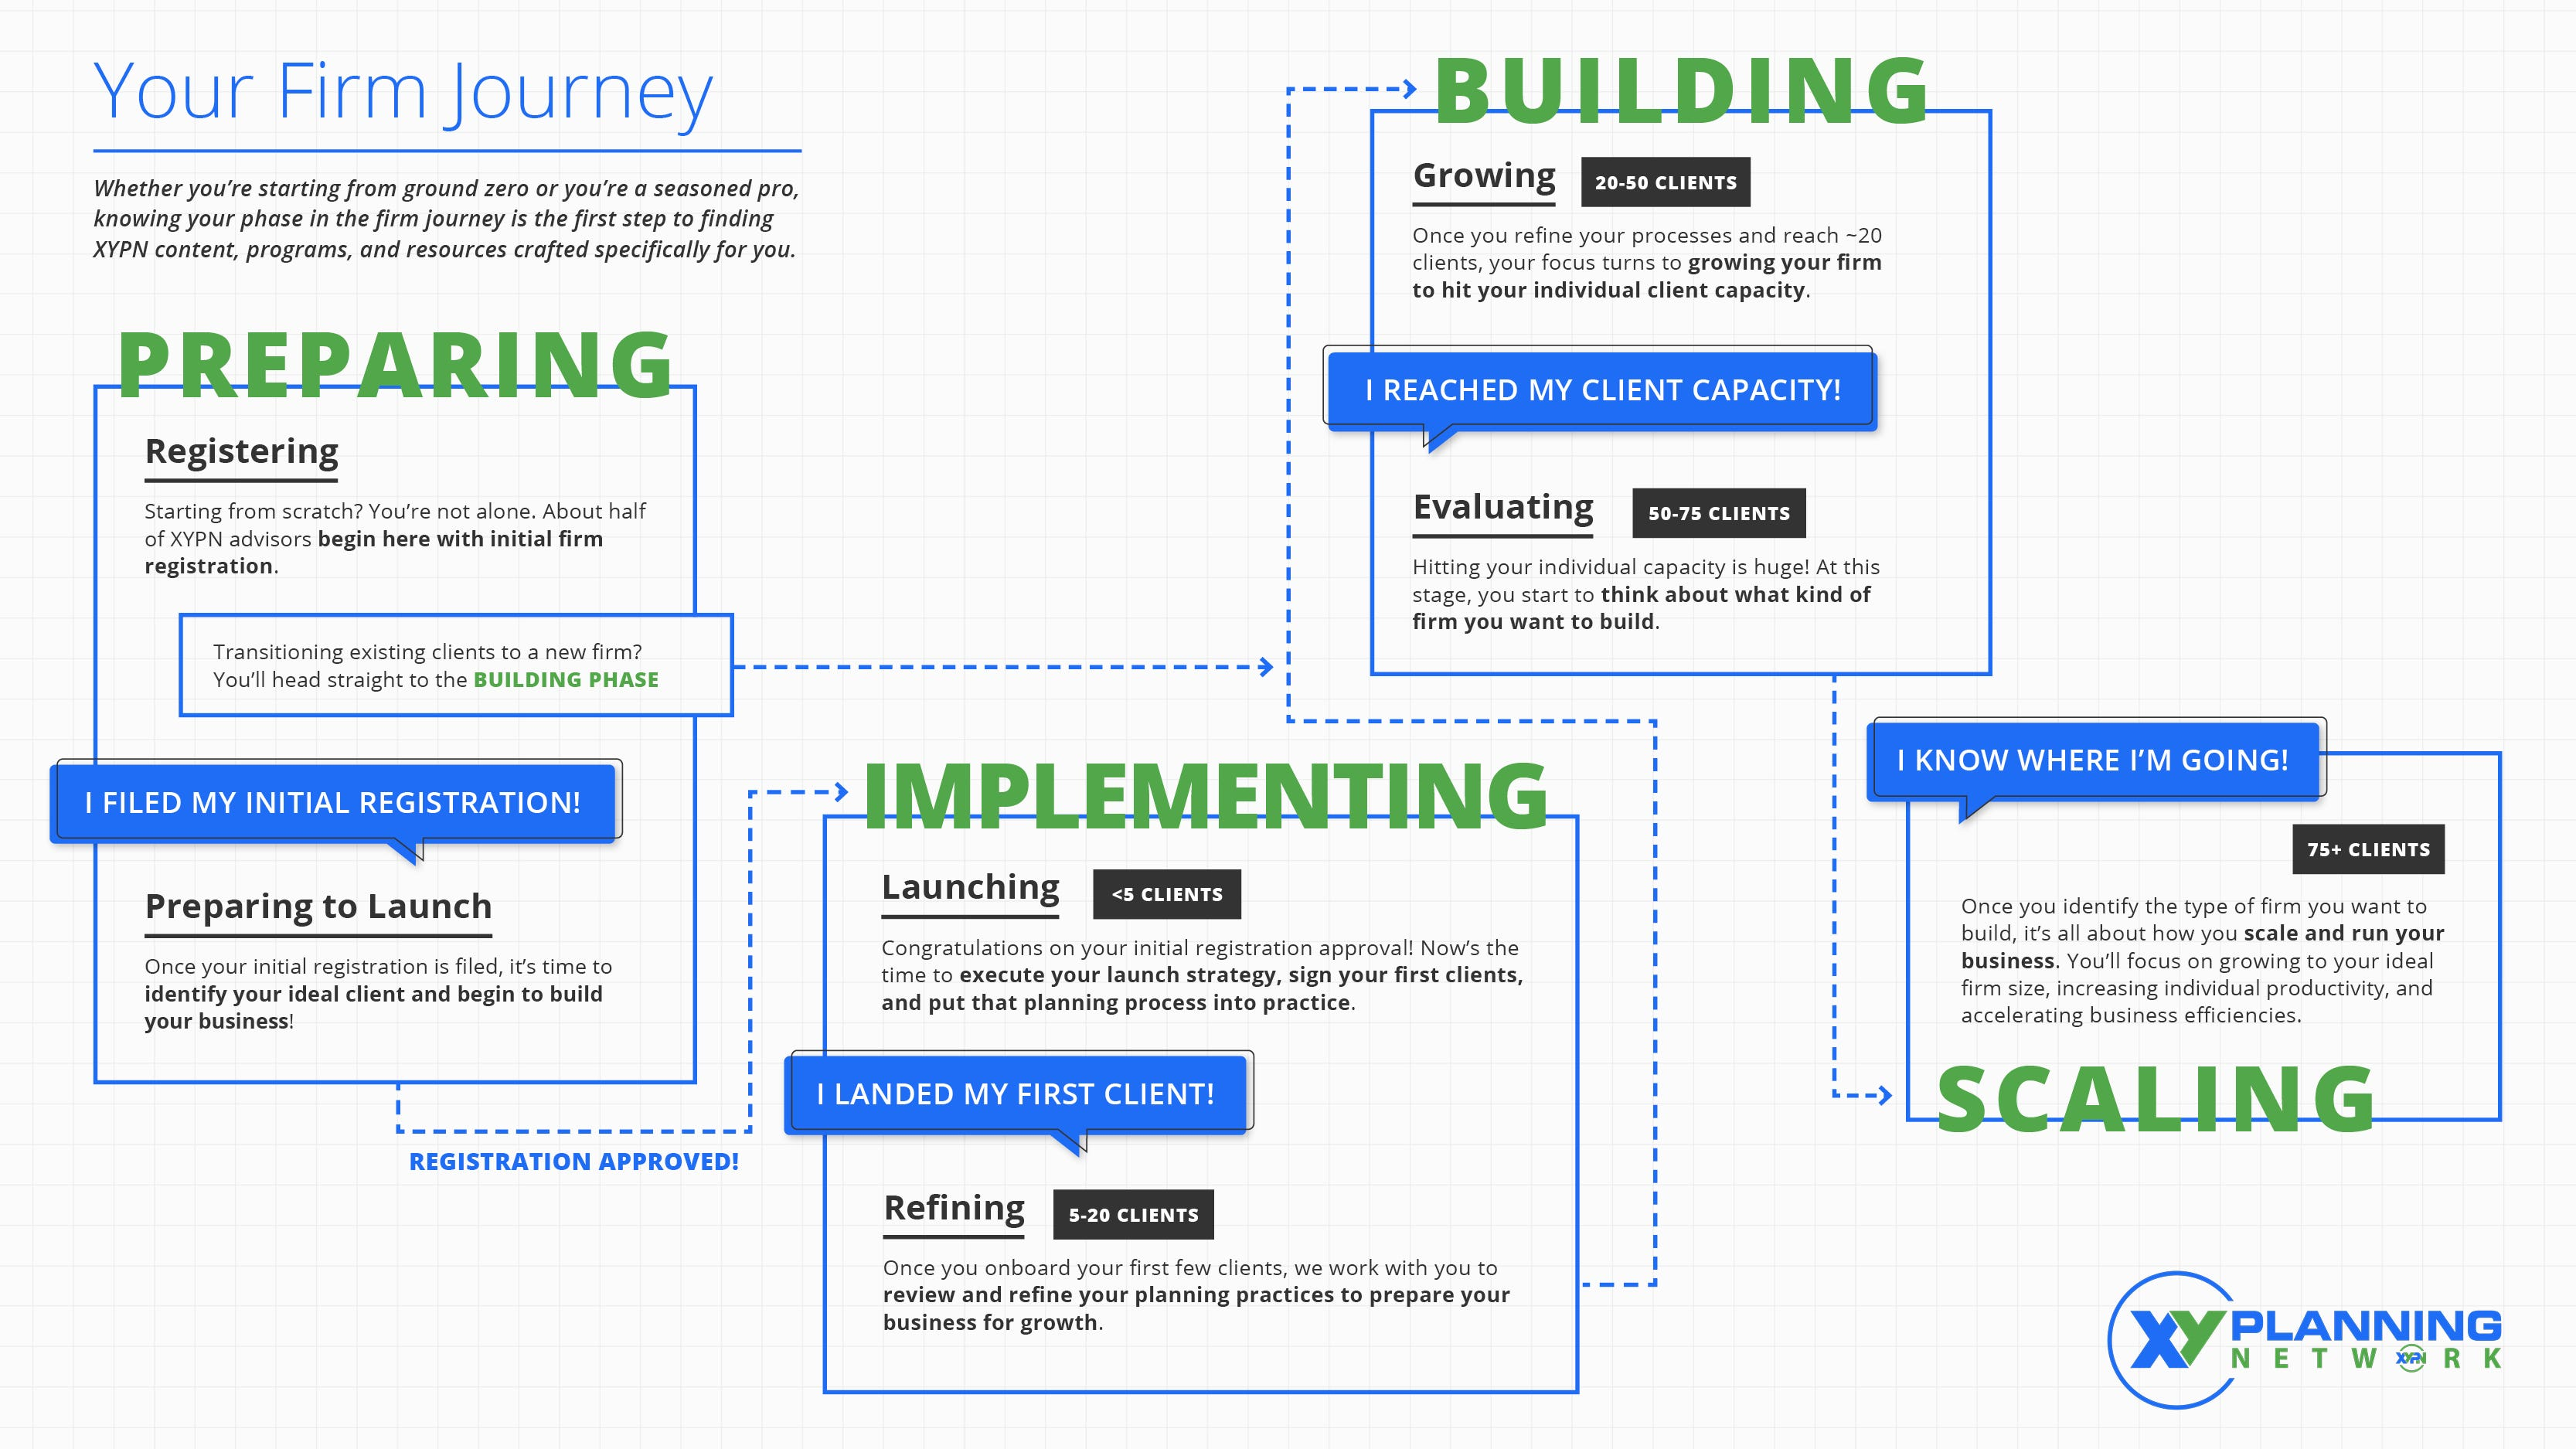 Firm Phase Journey Image. Green text on a white background describes firm phases.